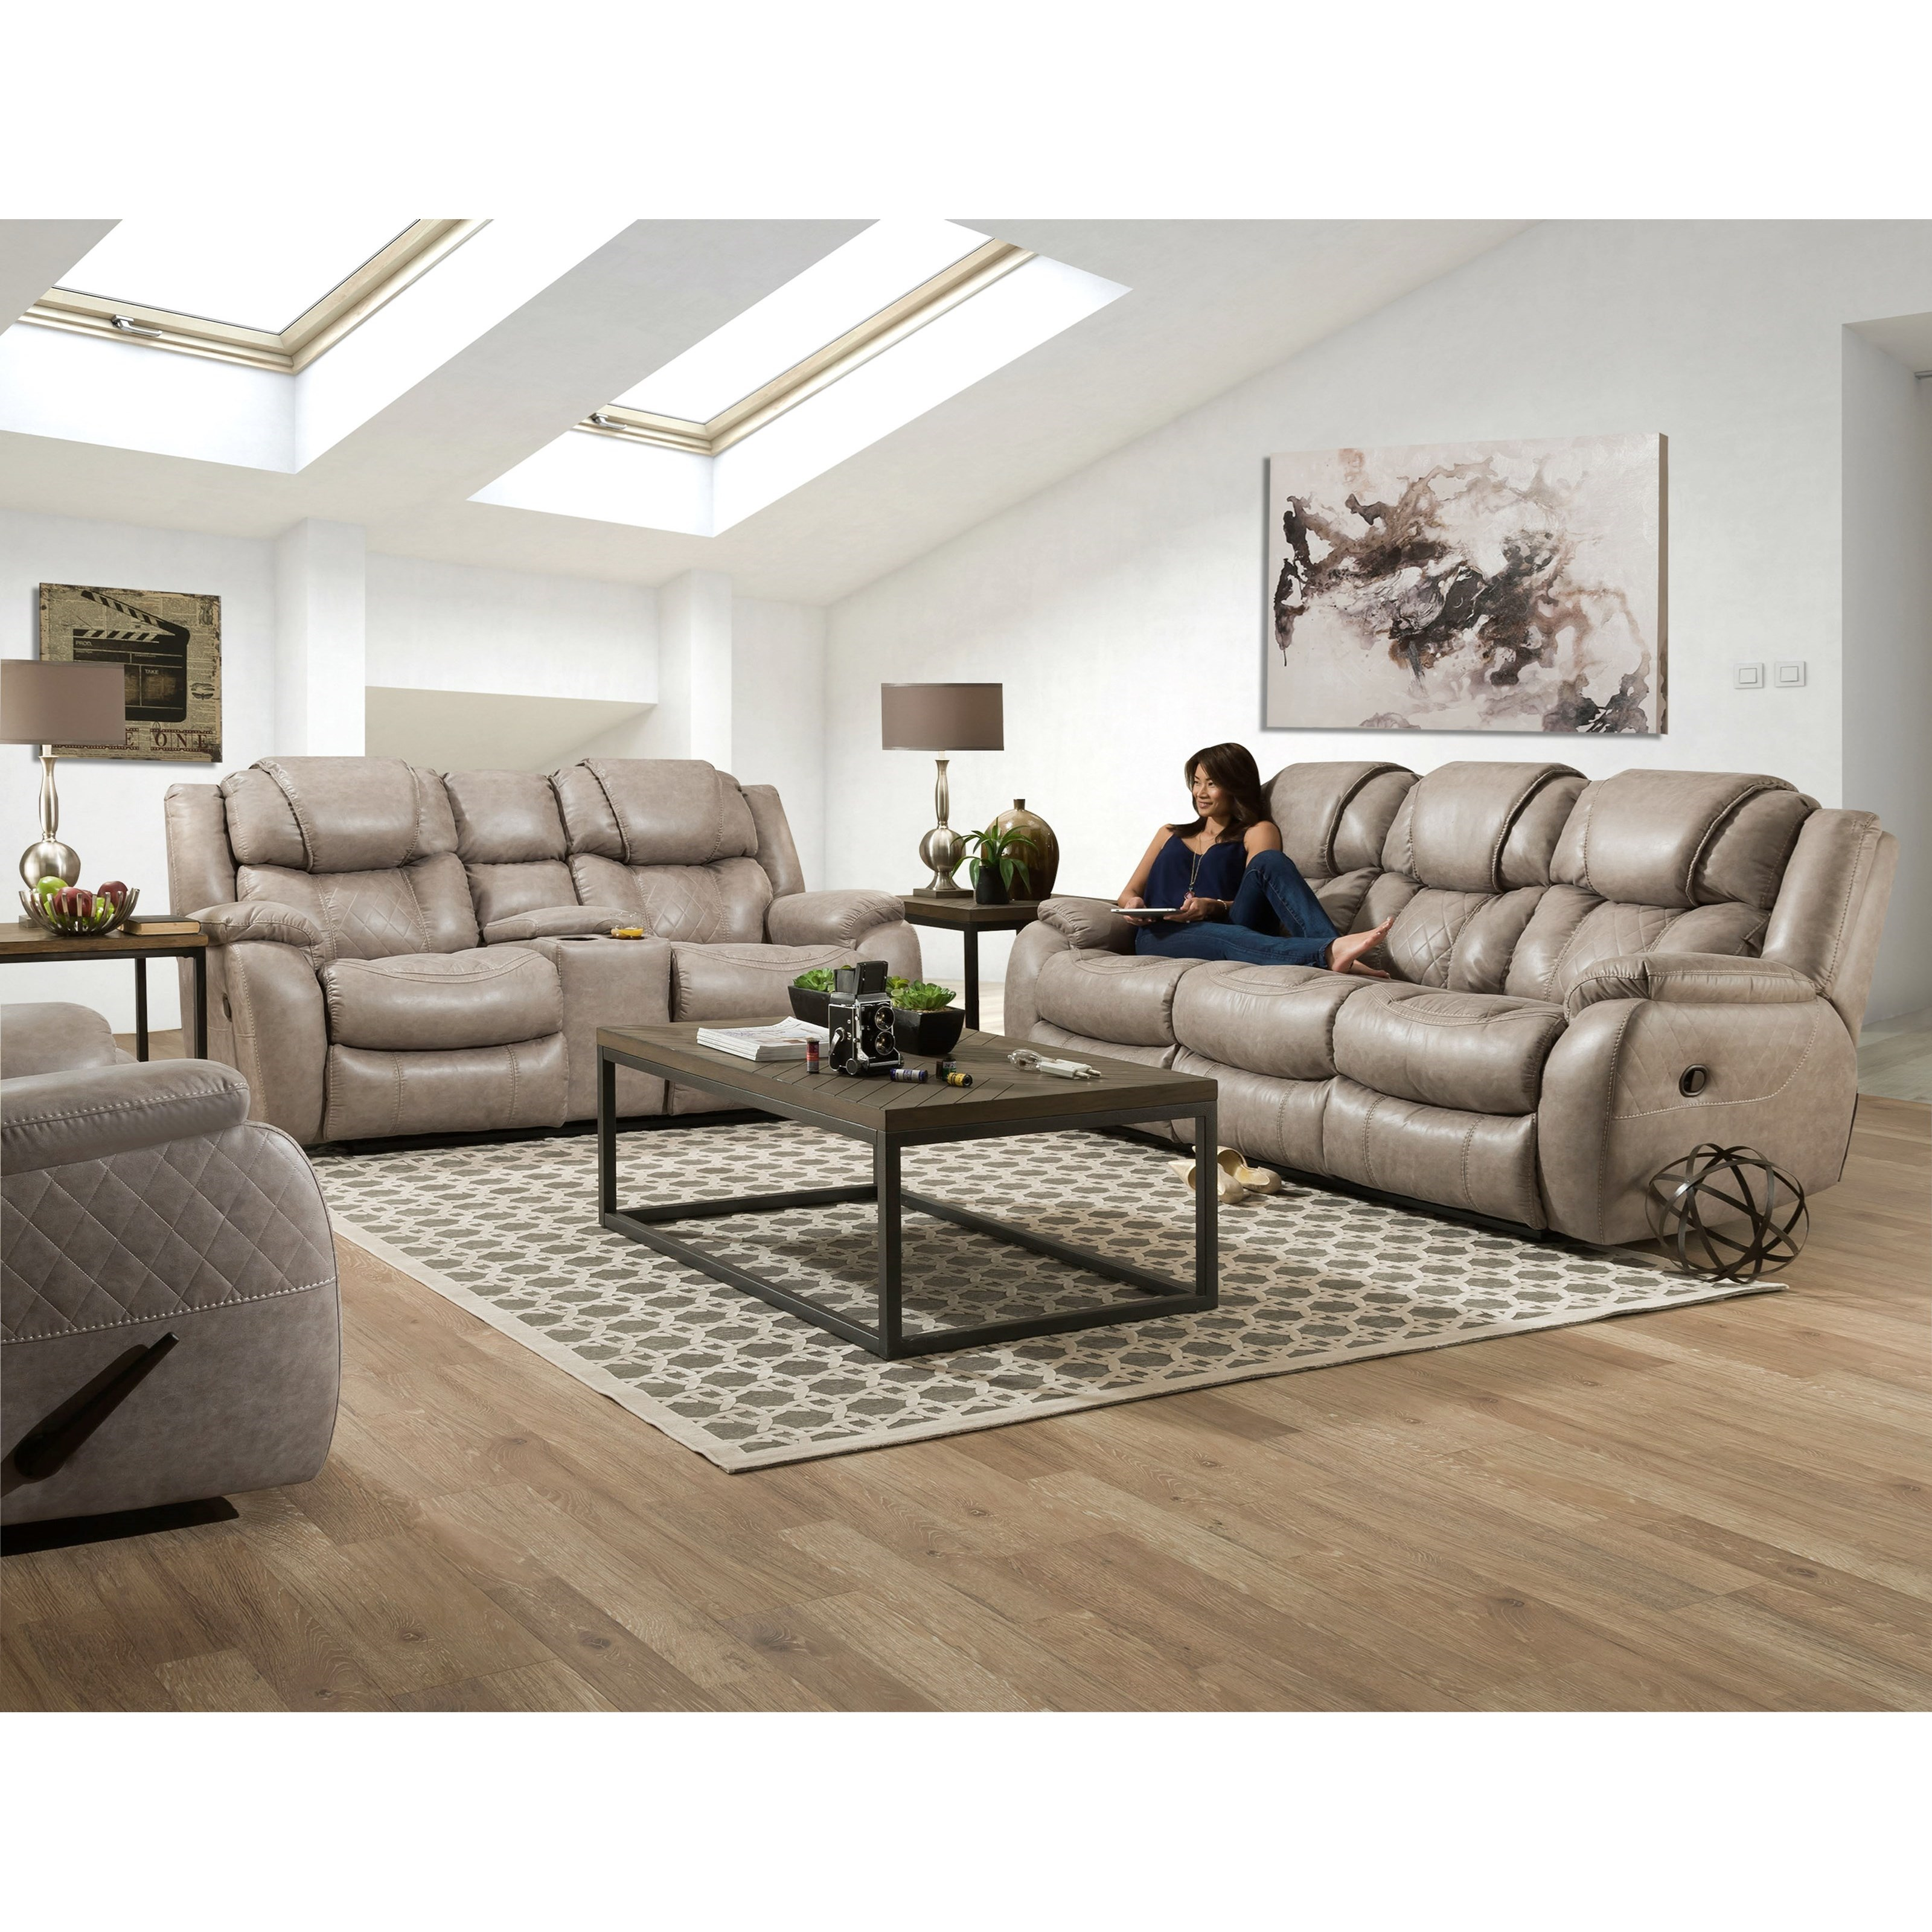 182 Reclining Living Room Group by HomeStretch at Wilcox Furniture